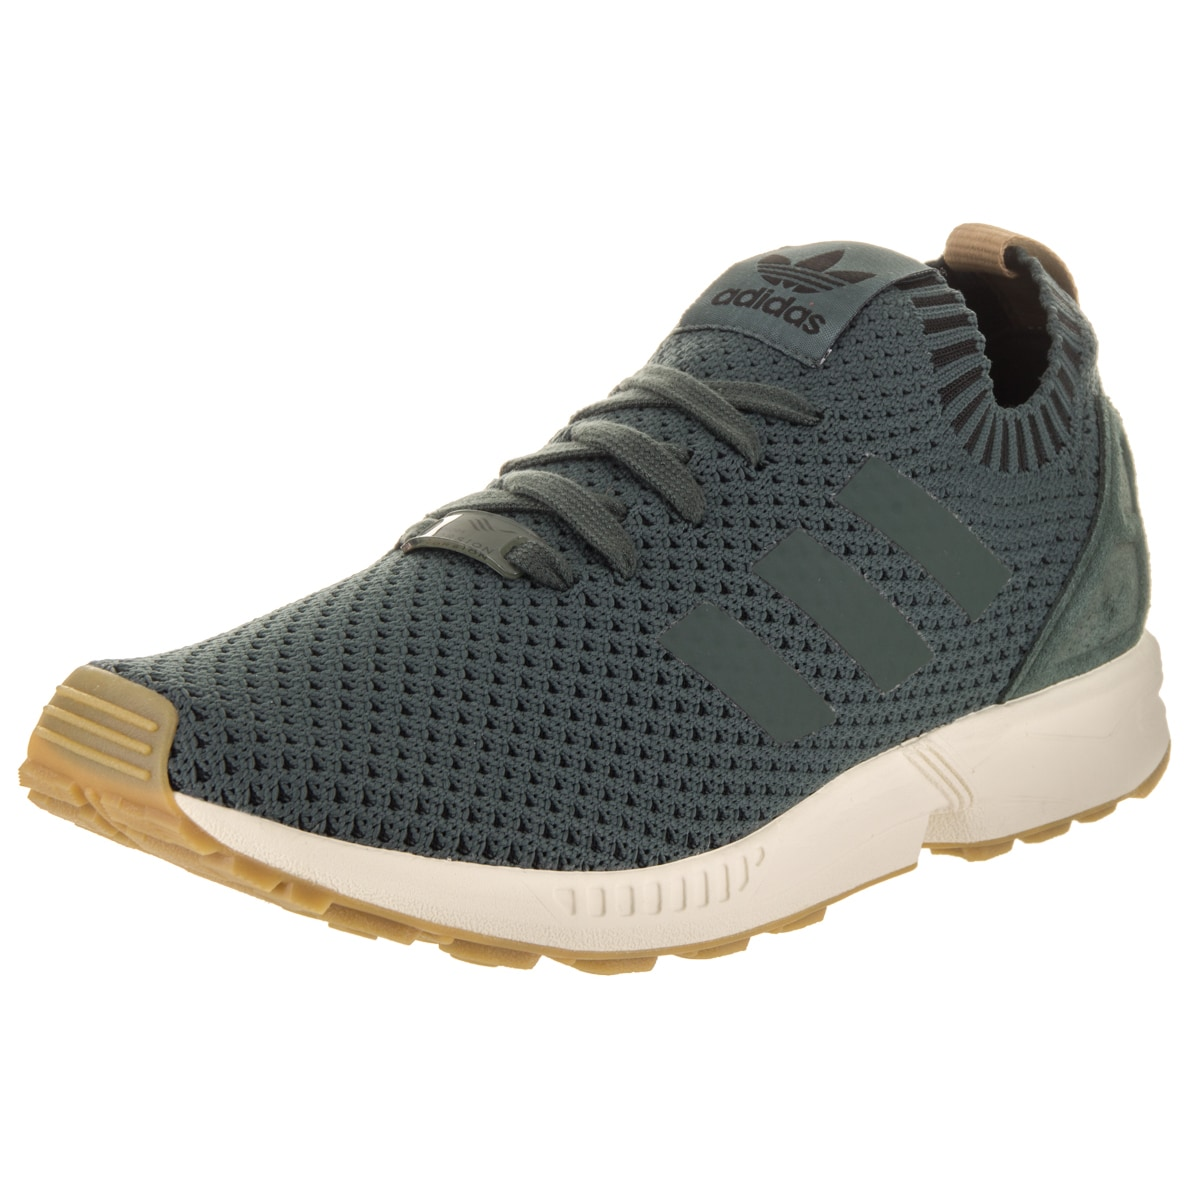 Adidas Men's ZX Flux Pk Originals Green Textile Casual Shoes